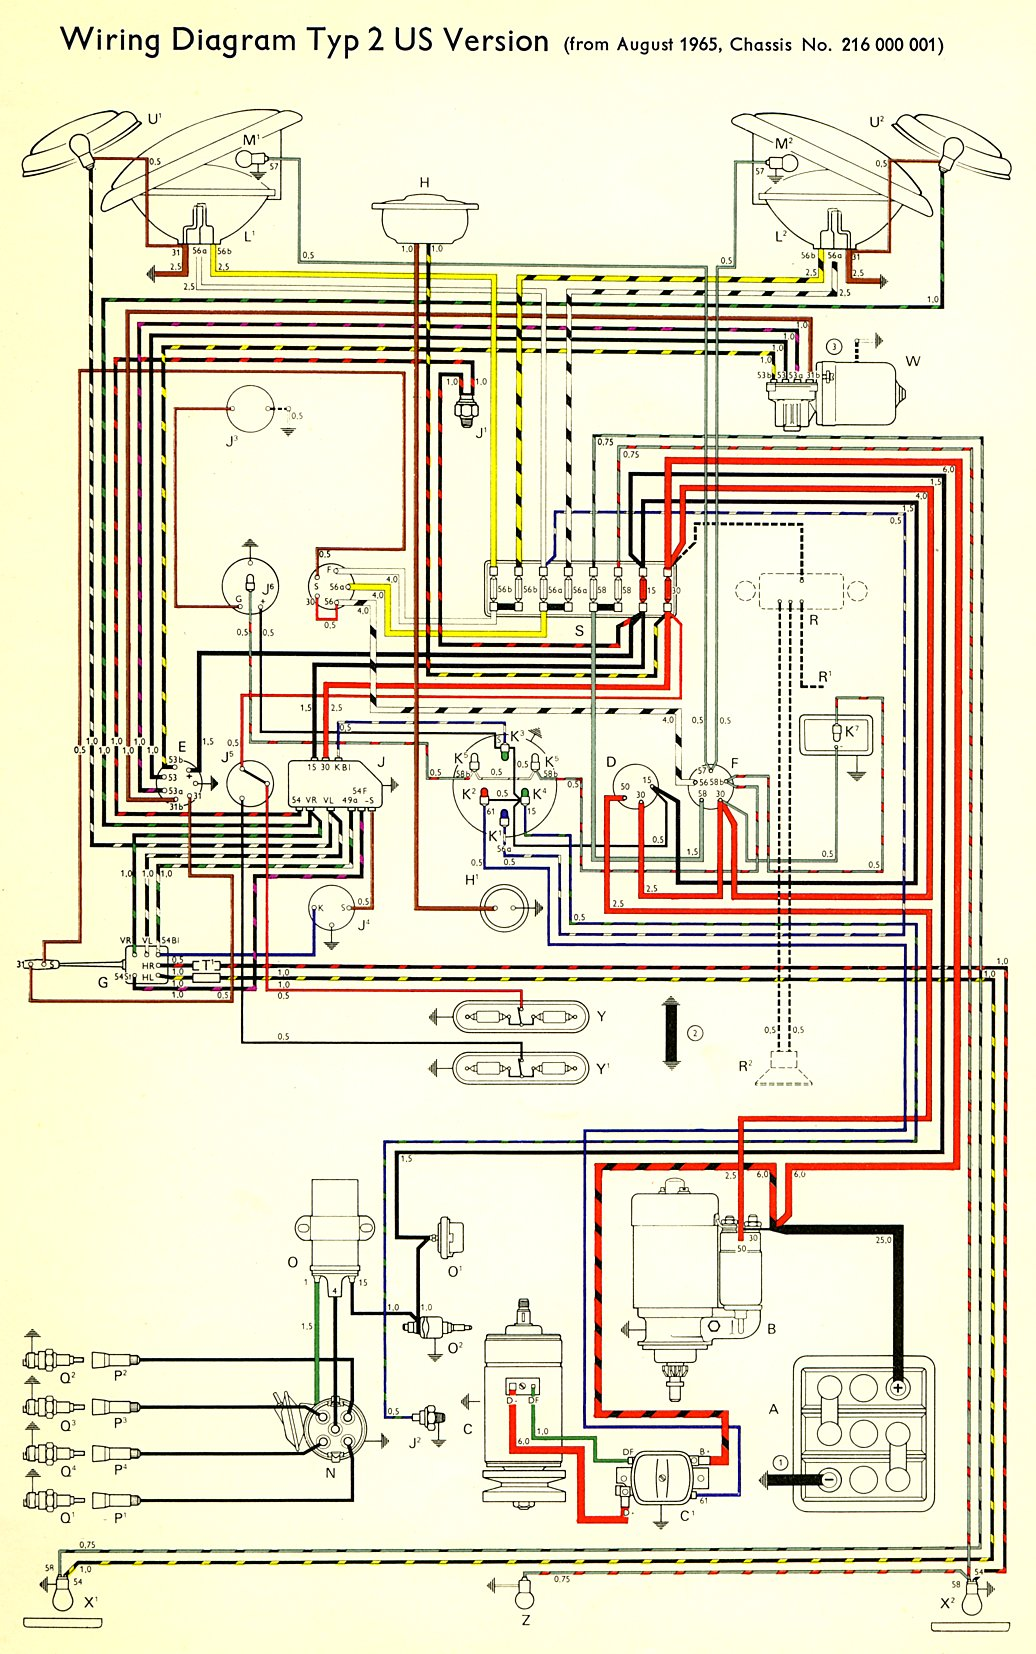 bus_66_USA 1966 bus wiring diagram (usa) thegoldenbug com vw wiring diagrams at webbmarketing.co